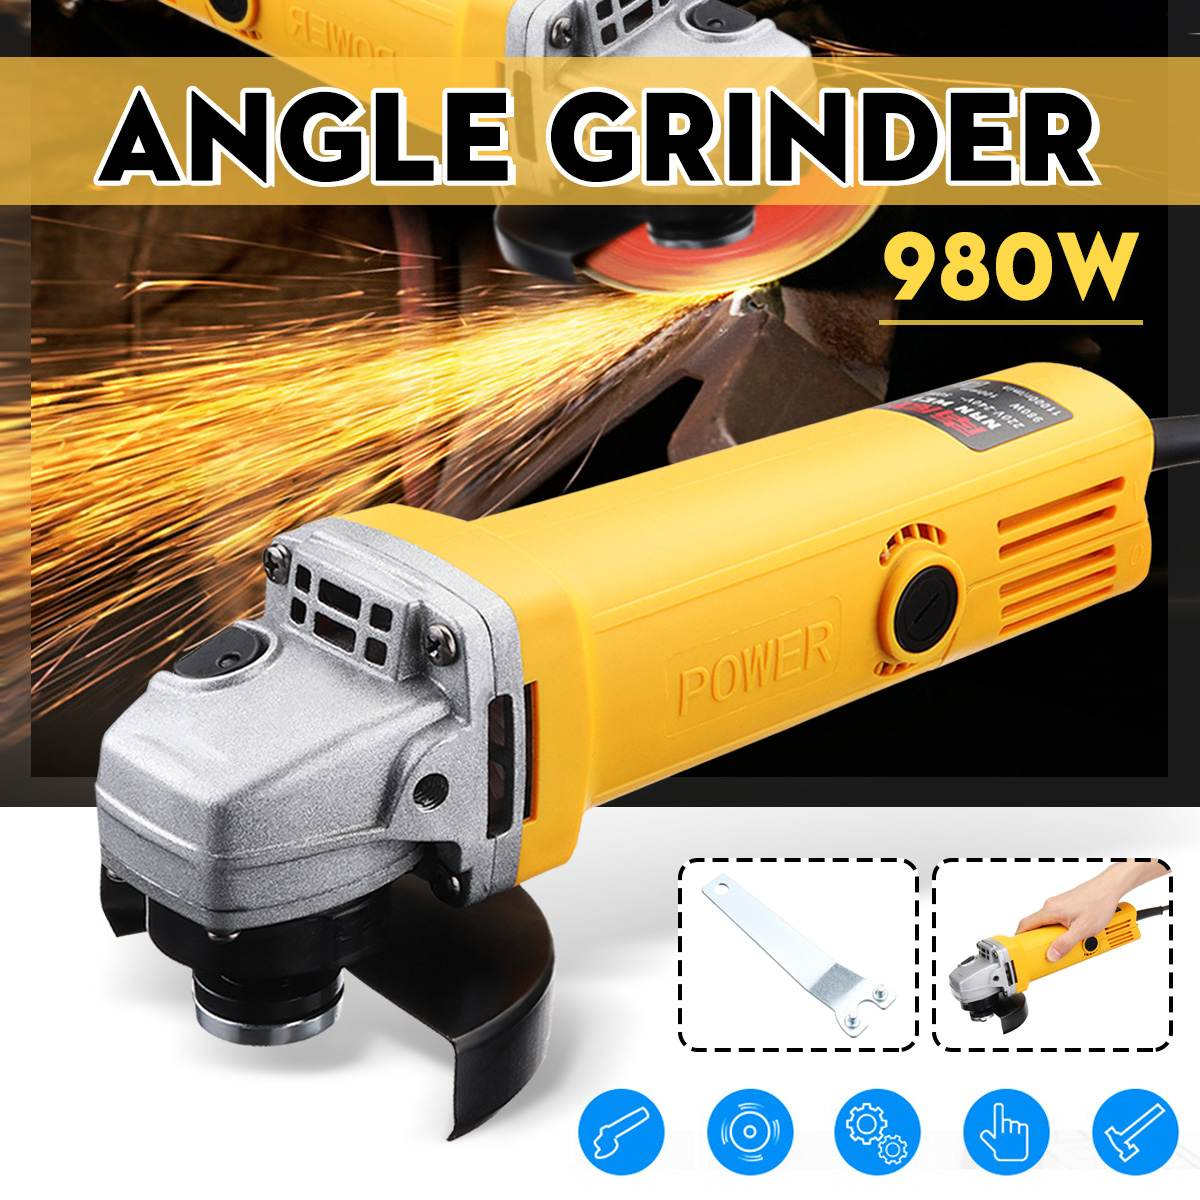 220V/50Hz 980W 11000r/min Angle Grinder Electric Angle Grinding Cutting Power Tools 100mm Diameter220V/50Hz 980W 11000r/min Angle Grinder Electric Angle Grinding Cutting Power Tools 100mm Diameter